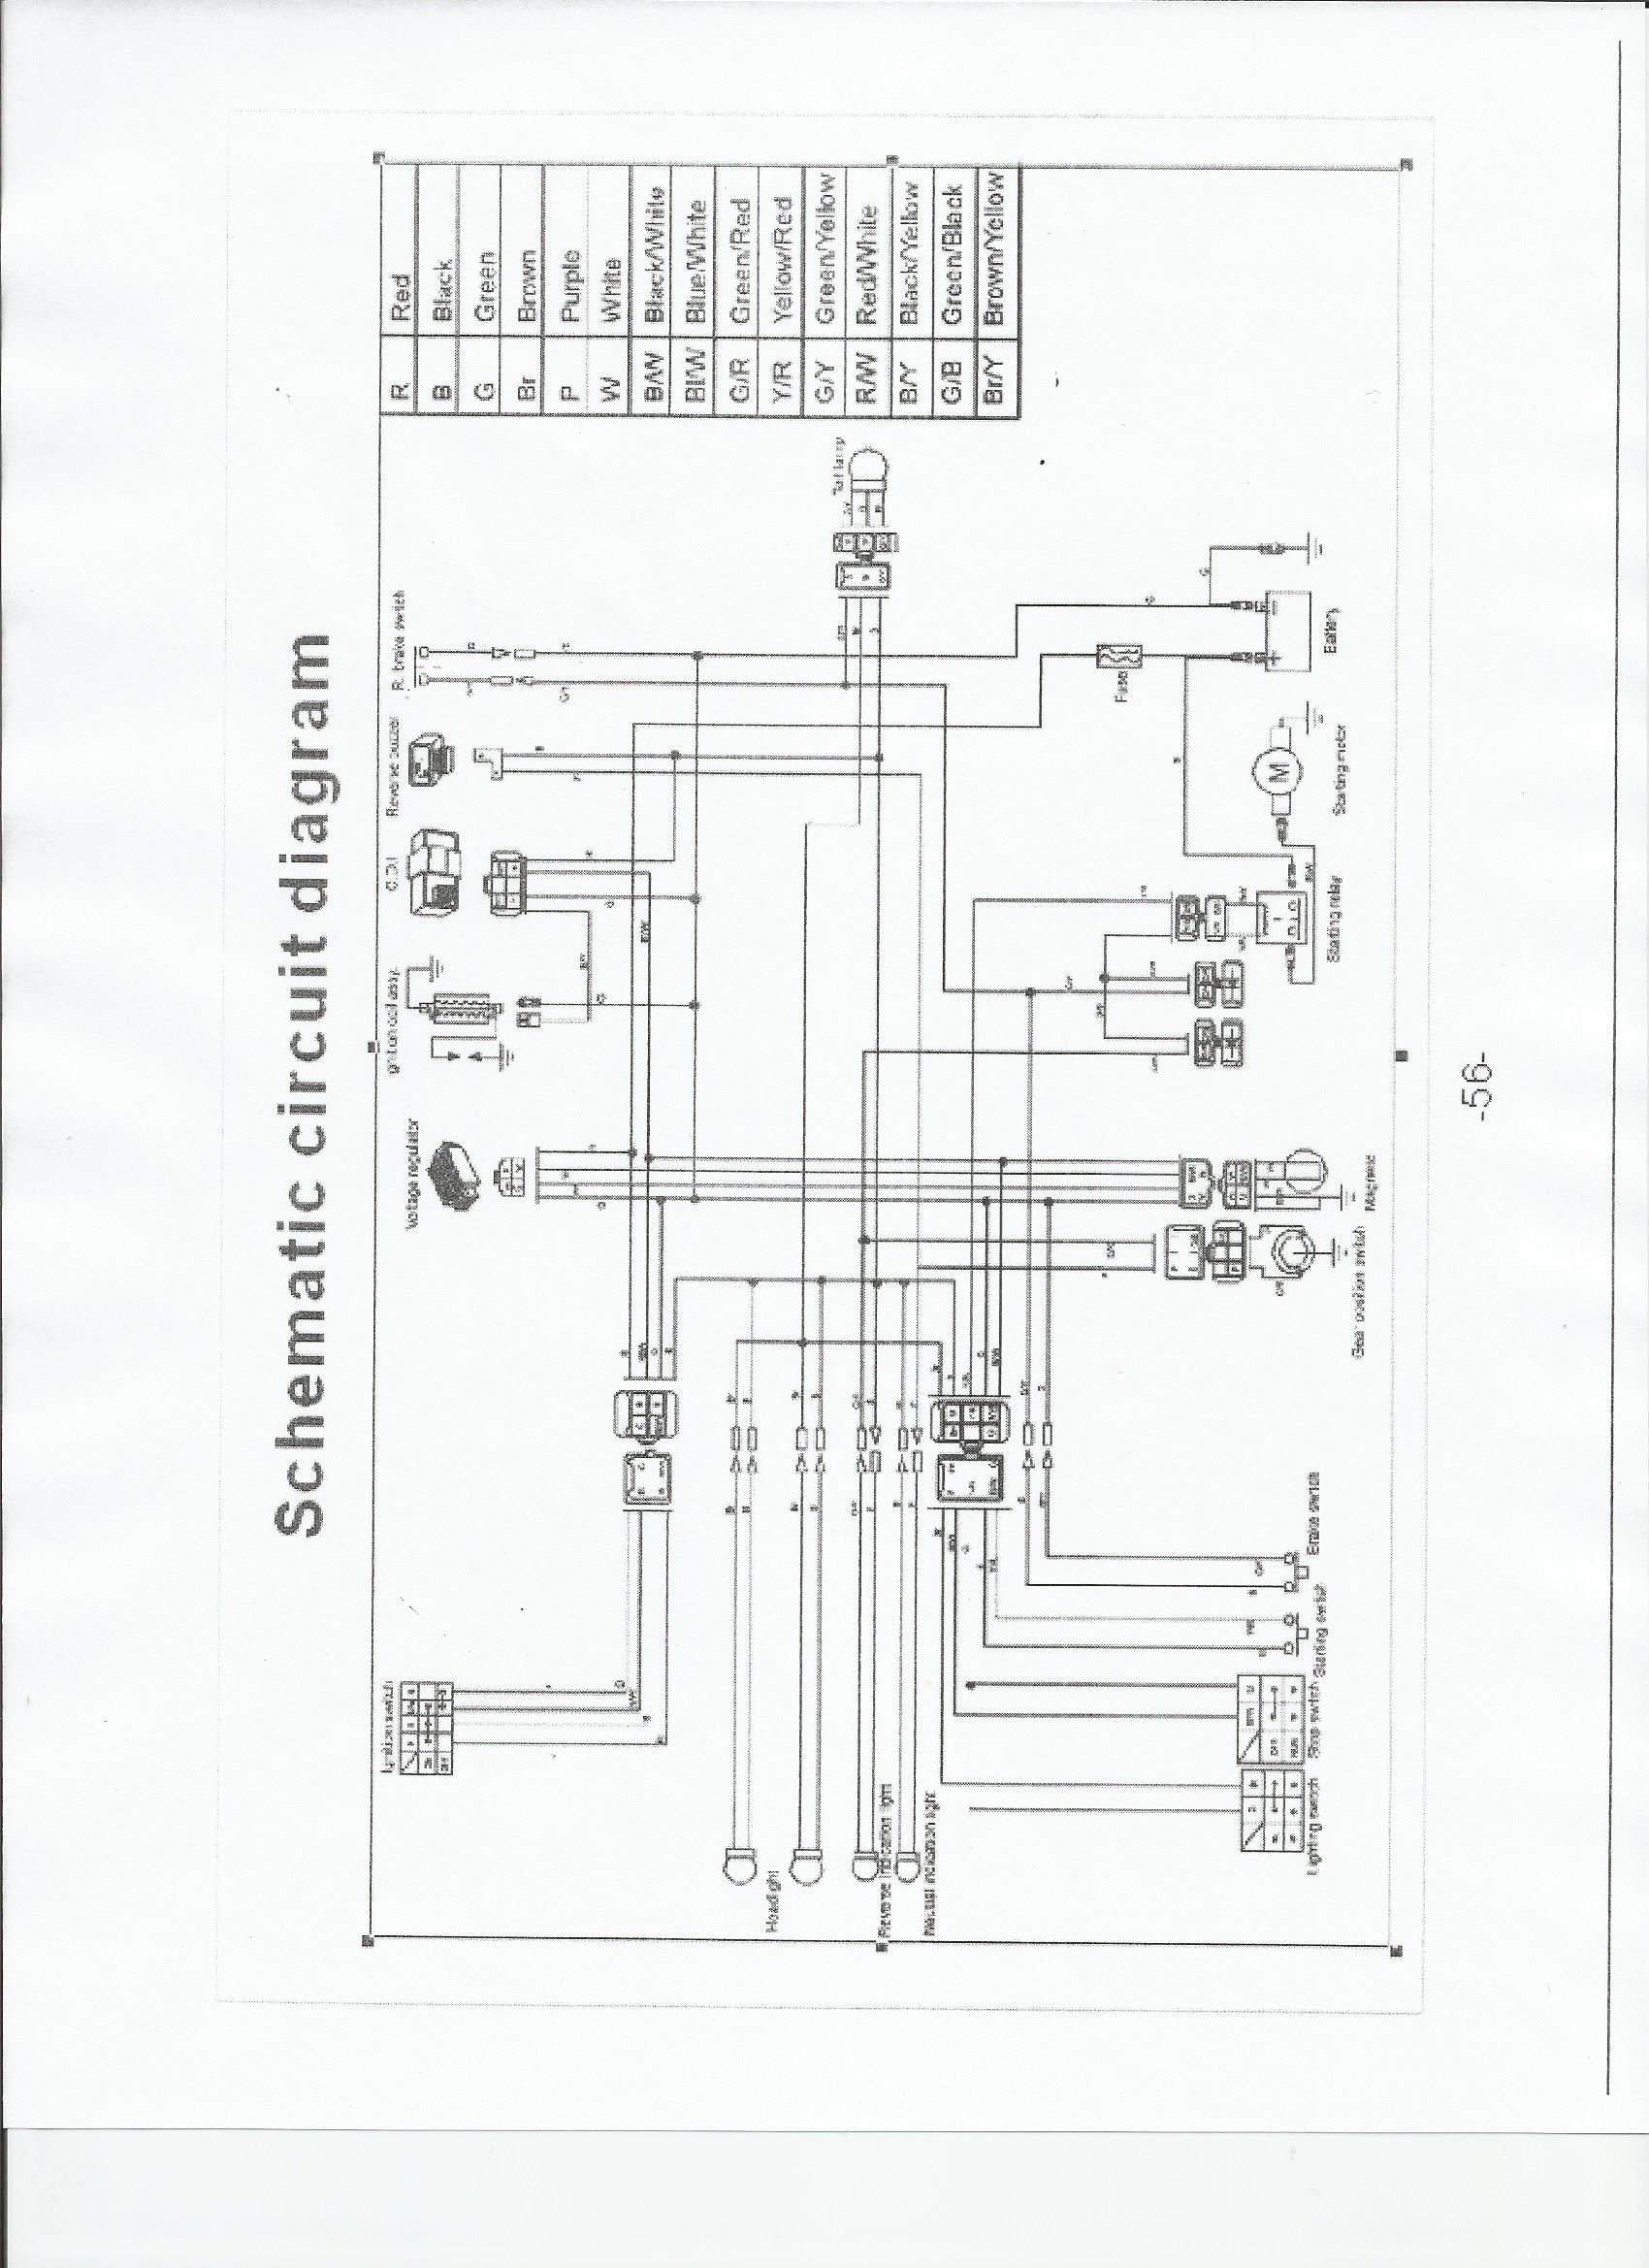 tao tao wiring schematic taotao mini and youth atv wiring schematic familygokarts support chinese 4 wheeler wiring diagram at mr168.co